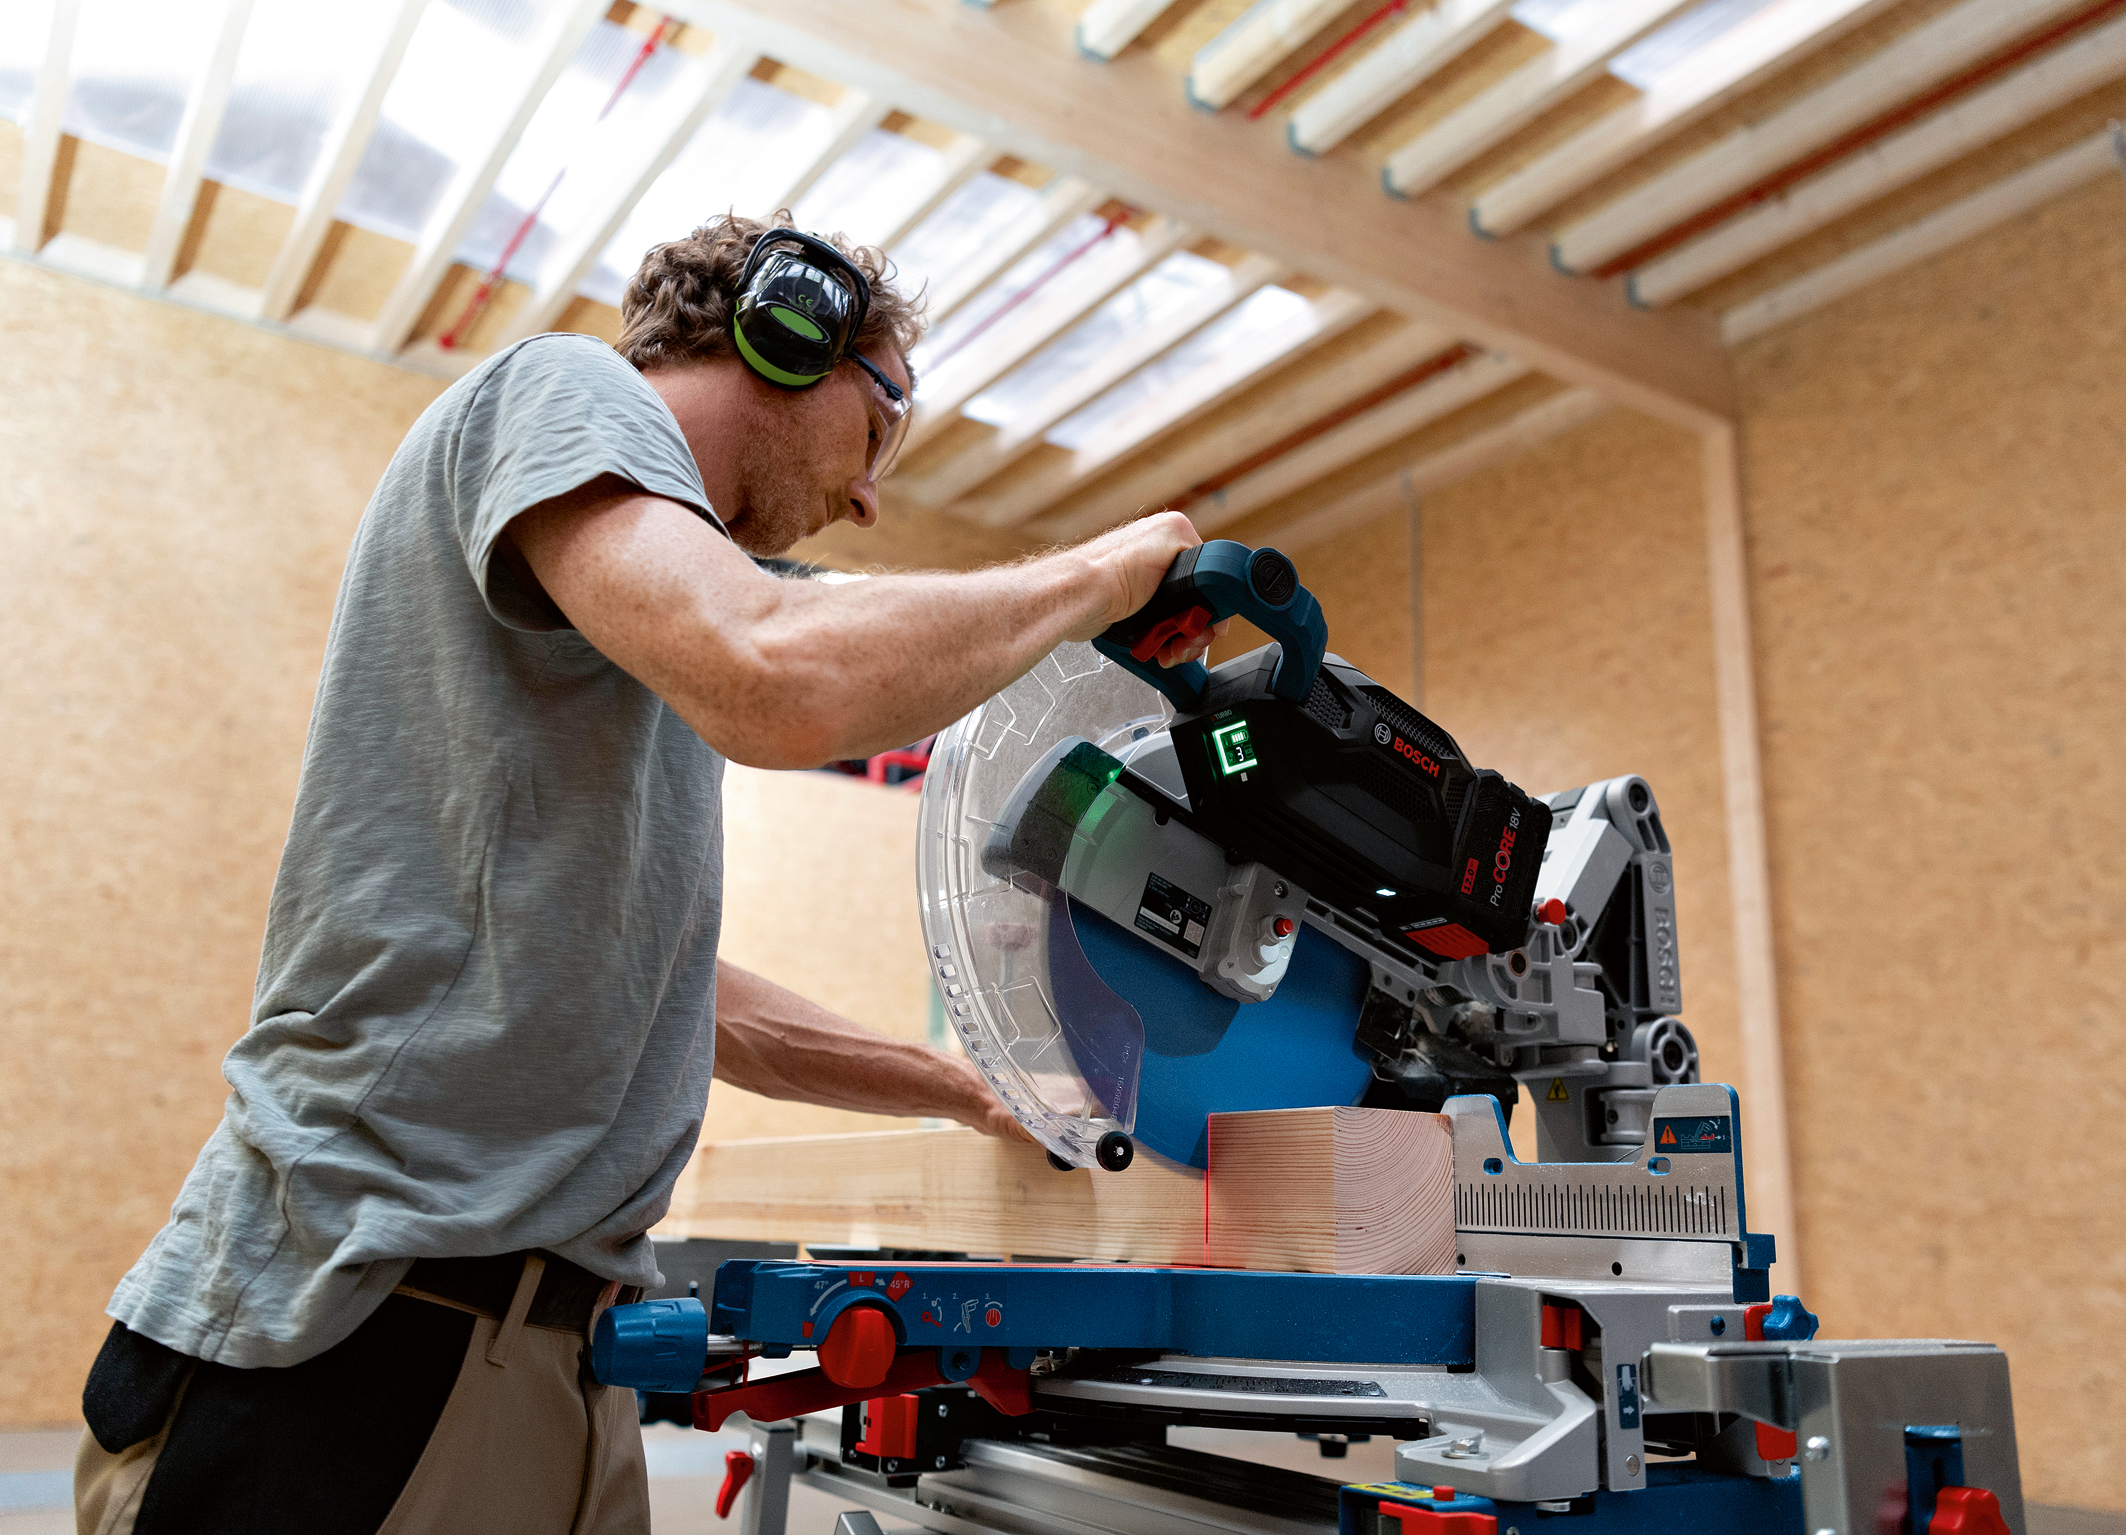 Superior cutting performance confirmed by an independent test institute: Biturbo miter saw from Bosch for professionals